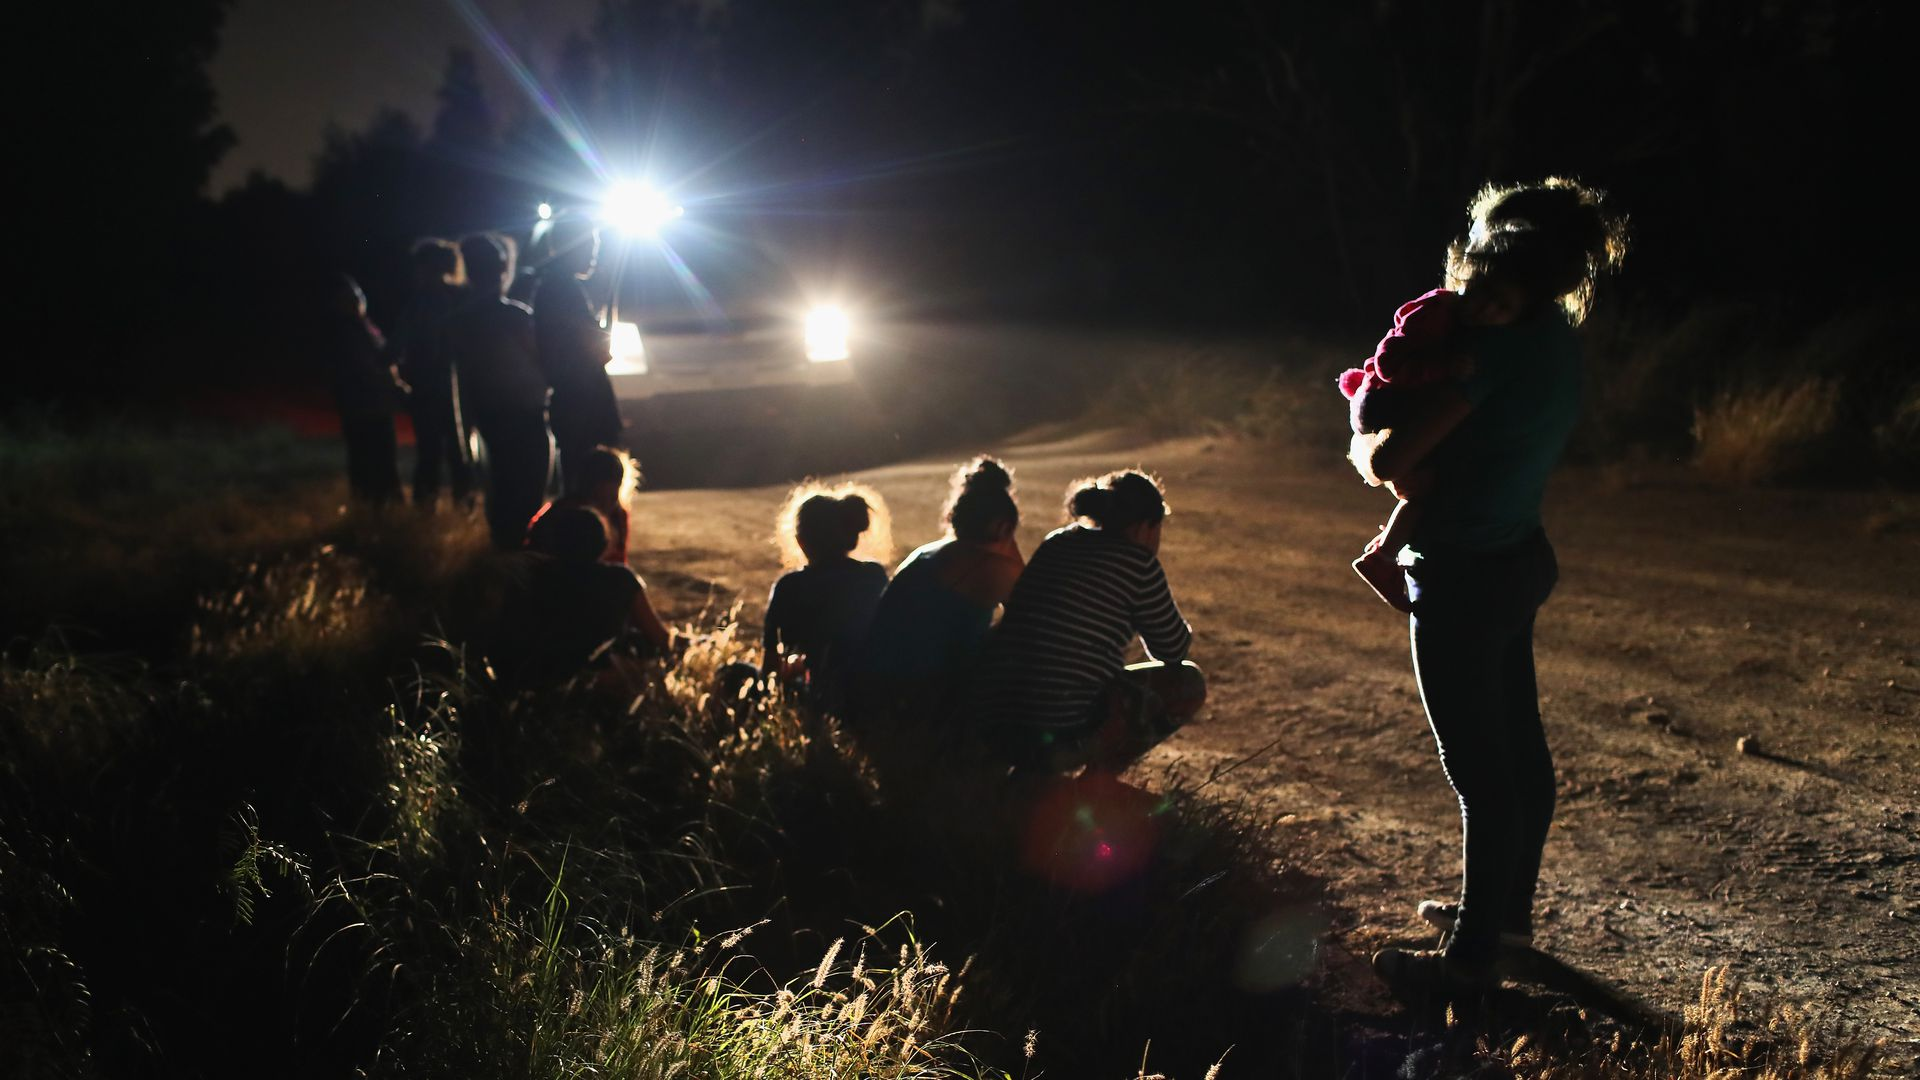 U.S. Border Patrol agents arrive to detain a group of Central American asylum seekers near the U.S.-Mexico border